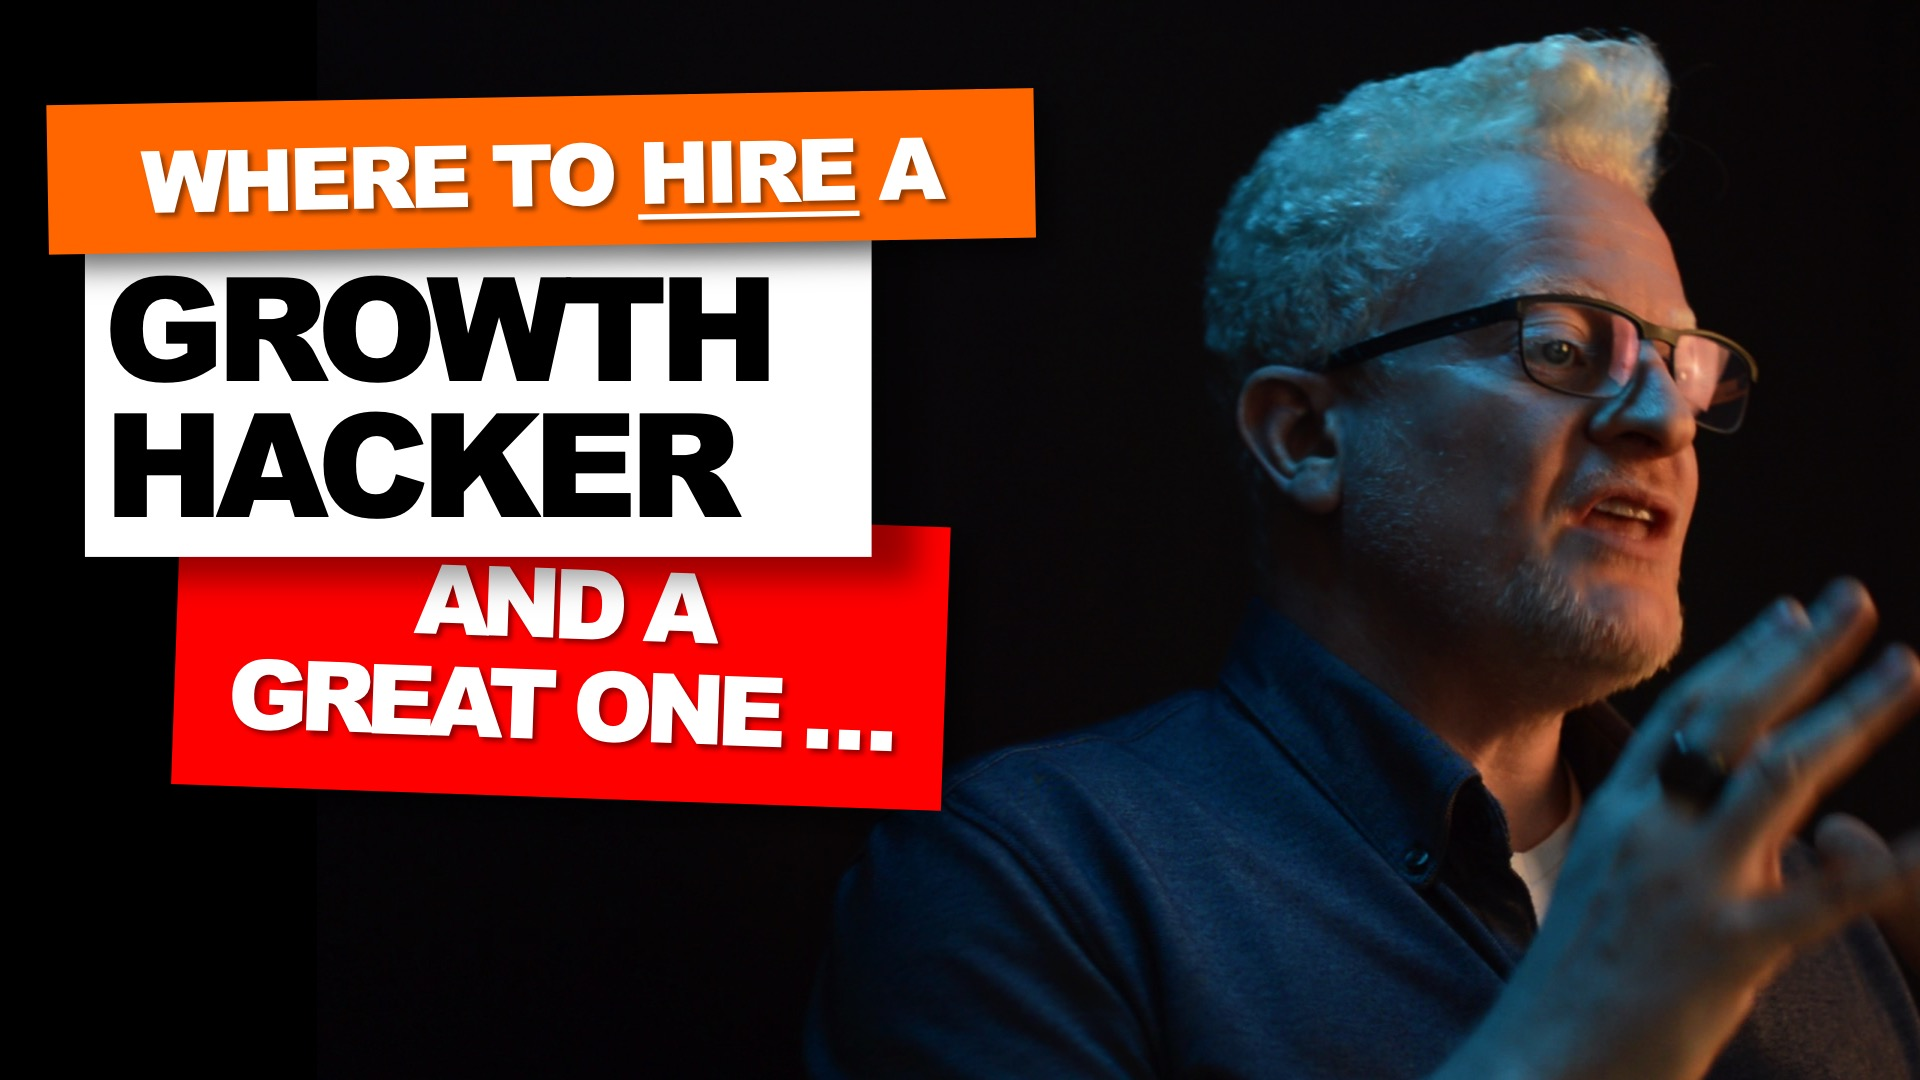 Hire a growth hacker